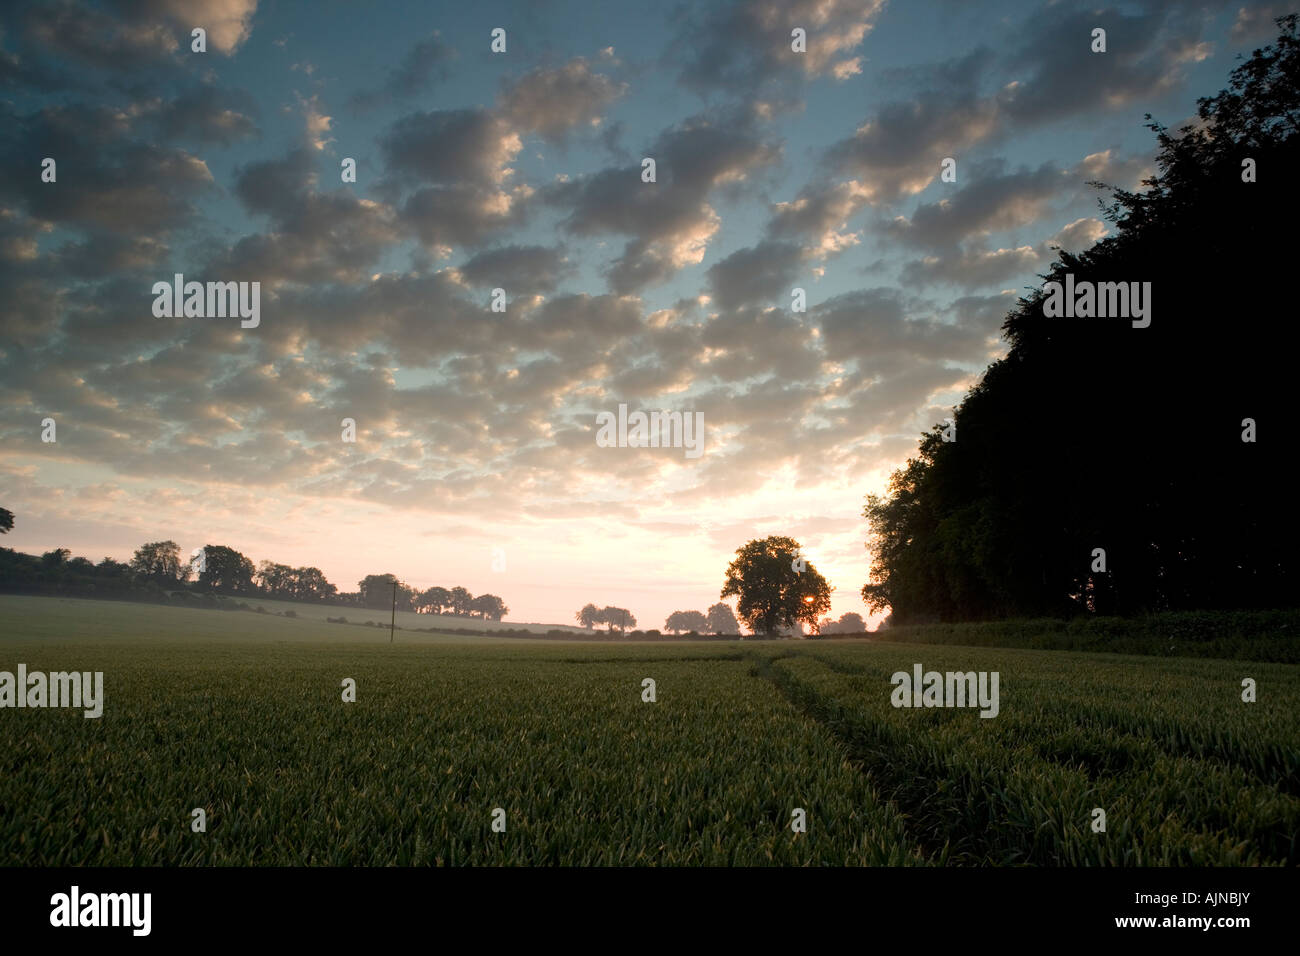 Looking across a wheatfield at sunrise - Stock Image